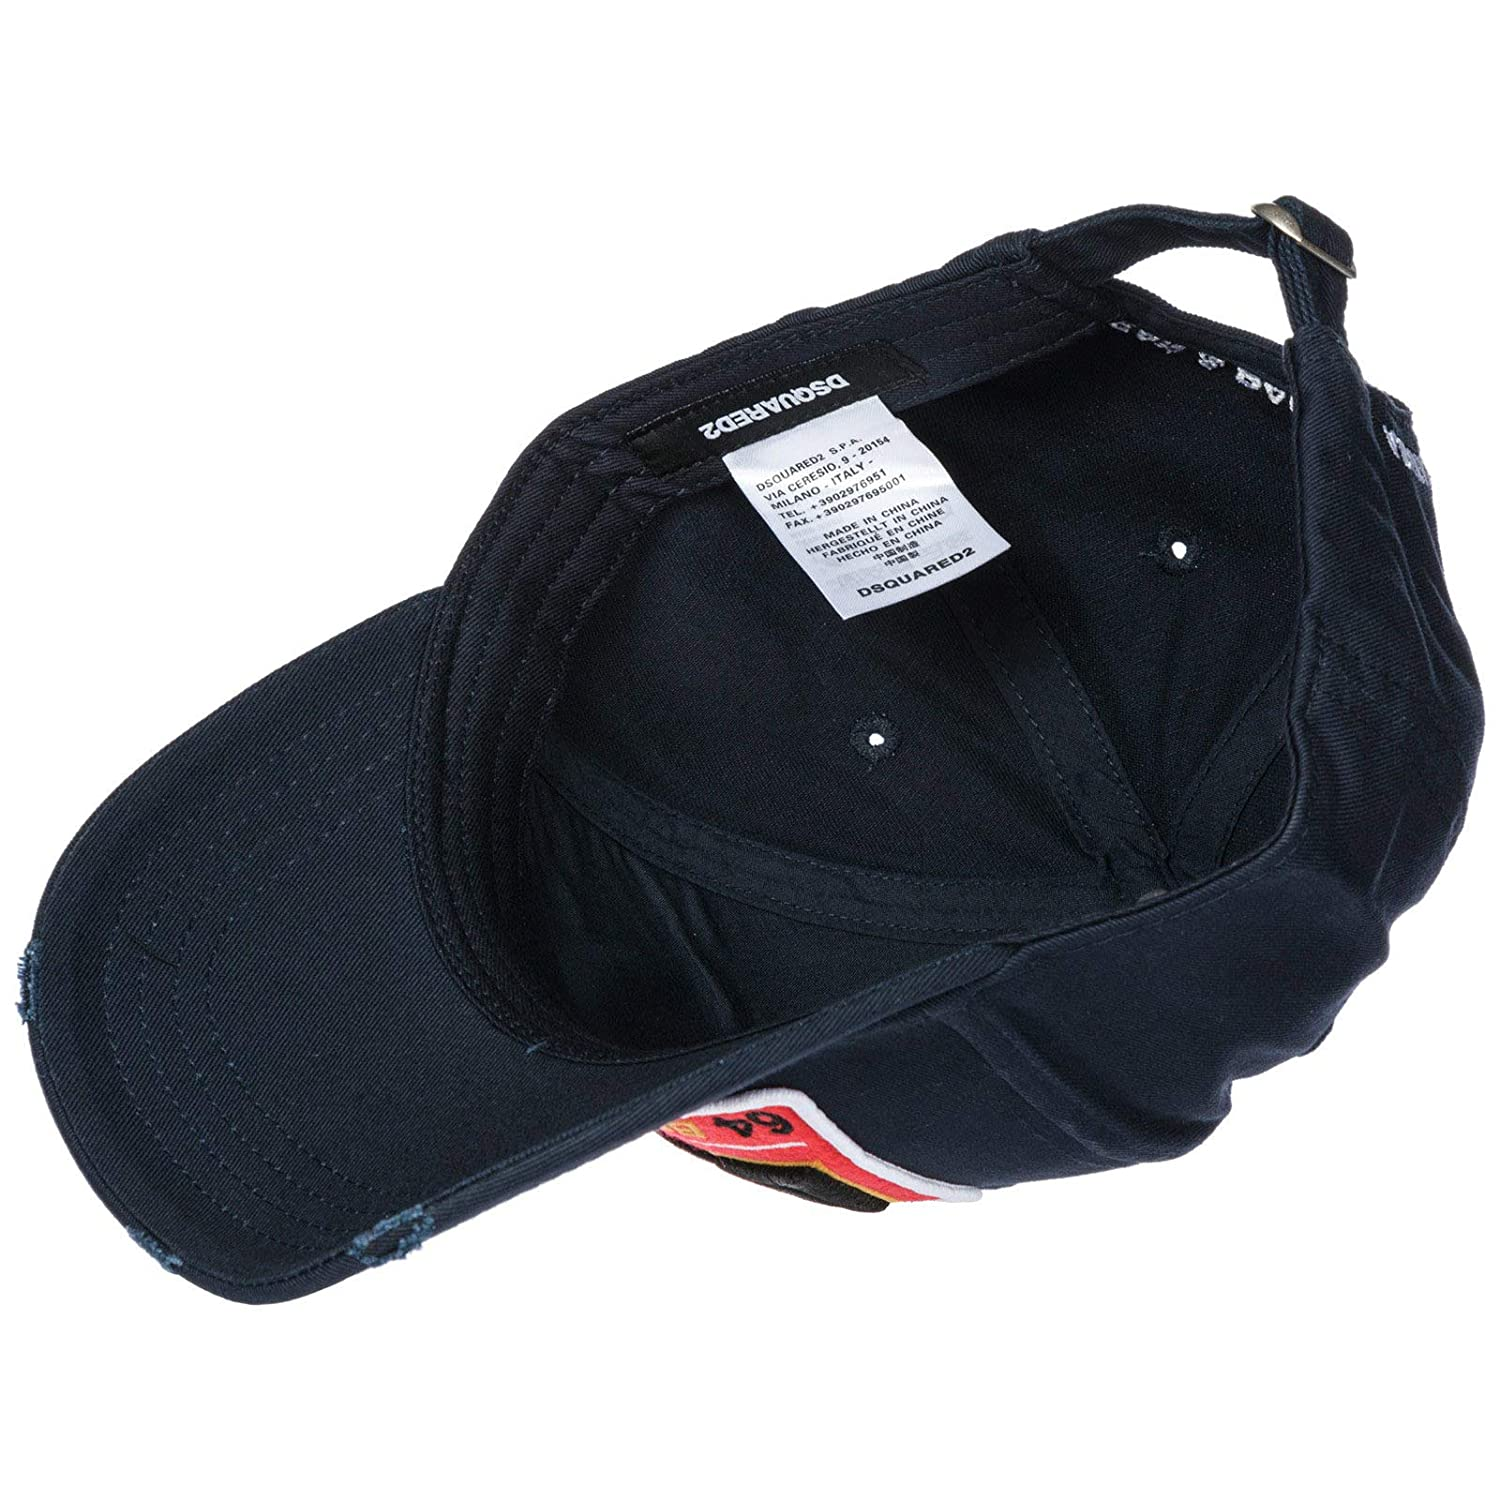 3492caff2d529a Dsquared2 Men DSQ Brothers Baseball Cap Navy: Amazon.co.uk: Clothing